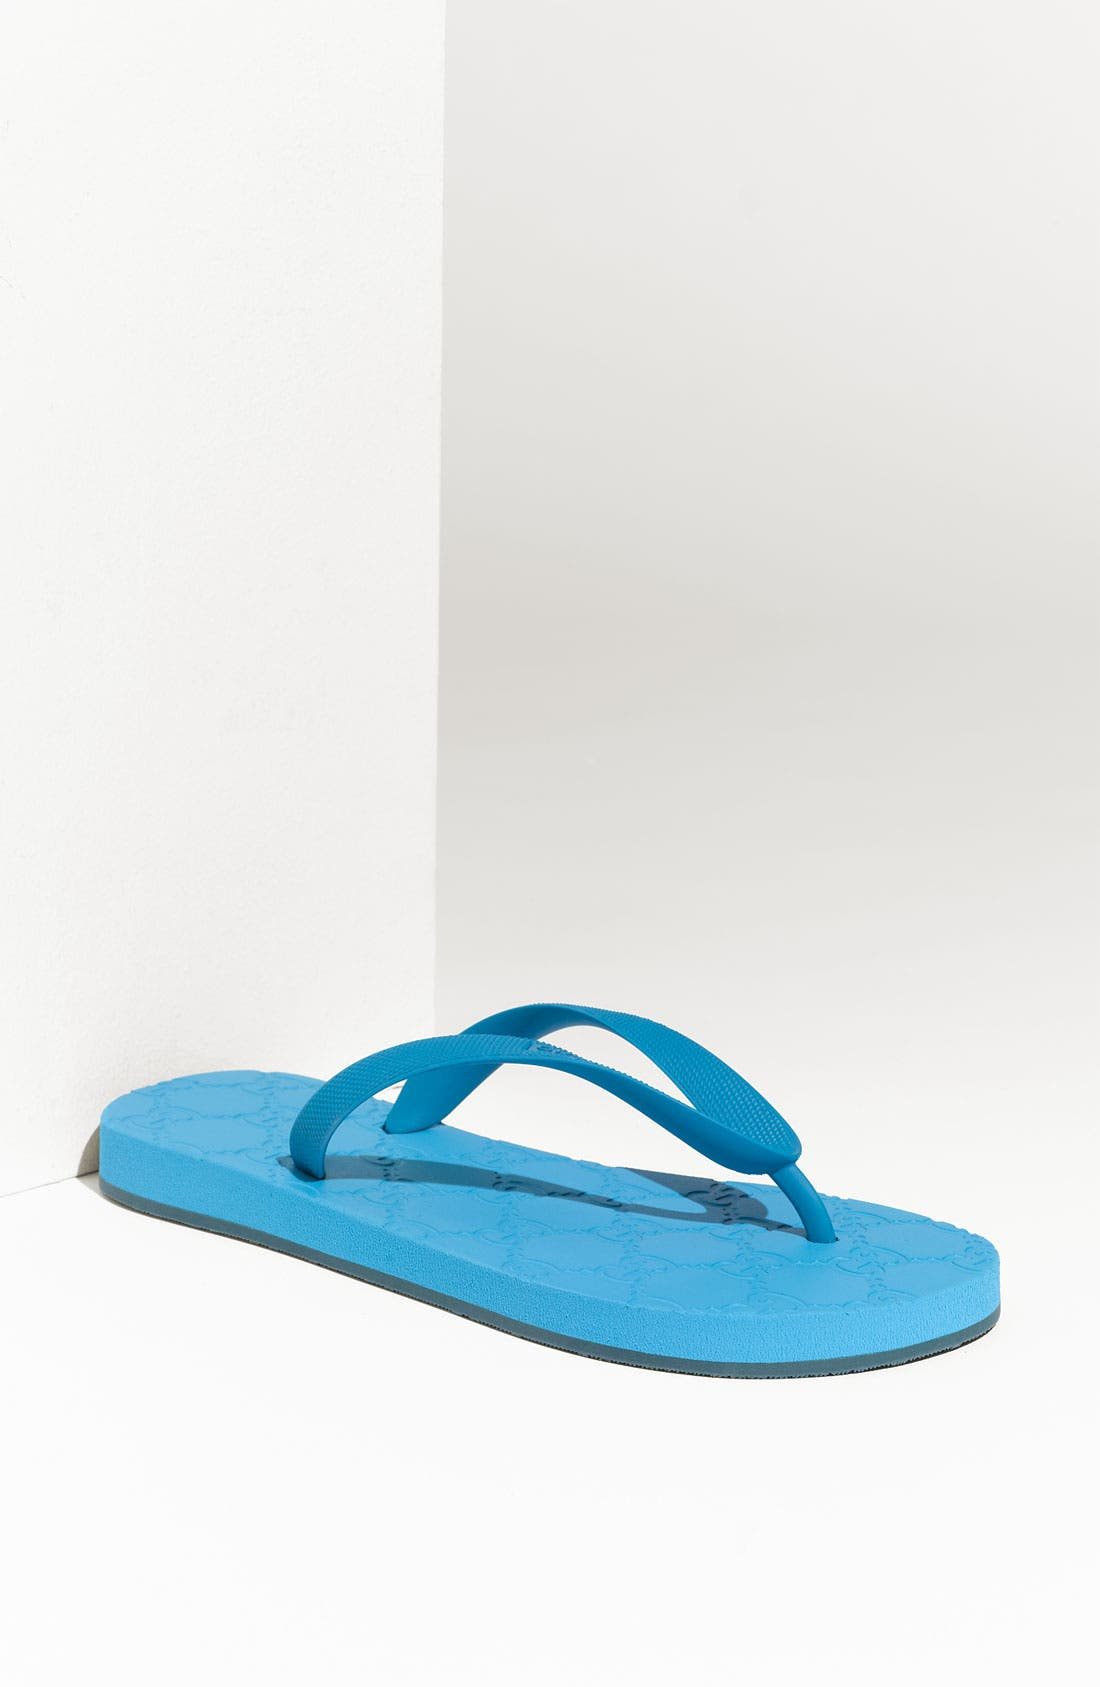 Alternate Image 1 Selected - Gucci 'Beldam' Sandal